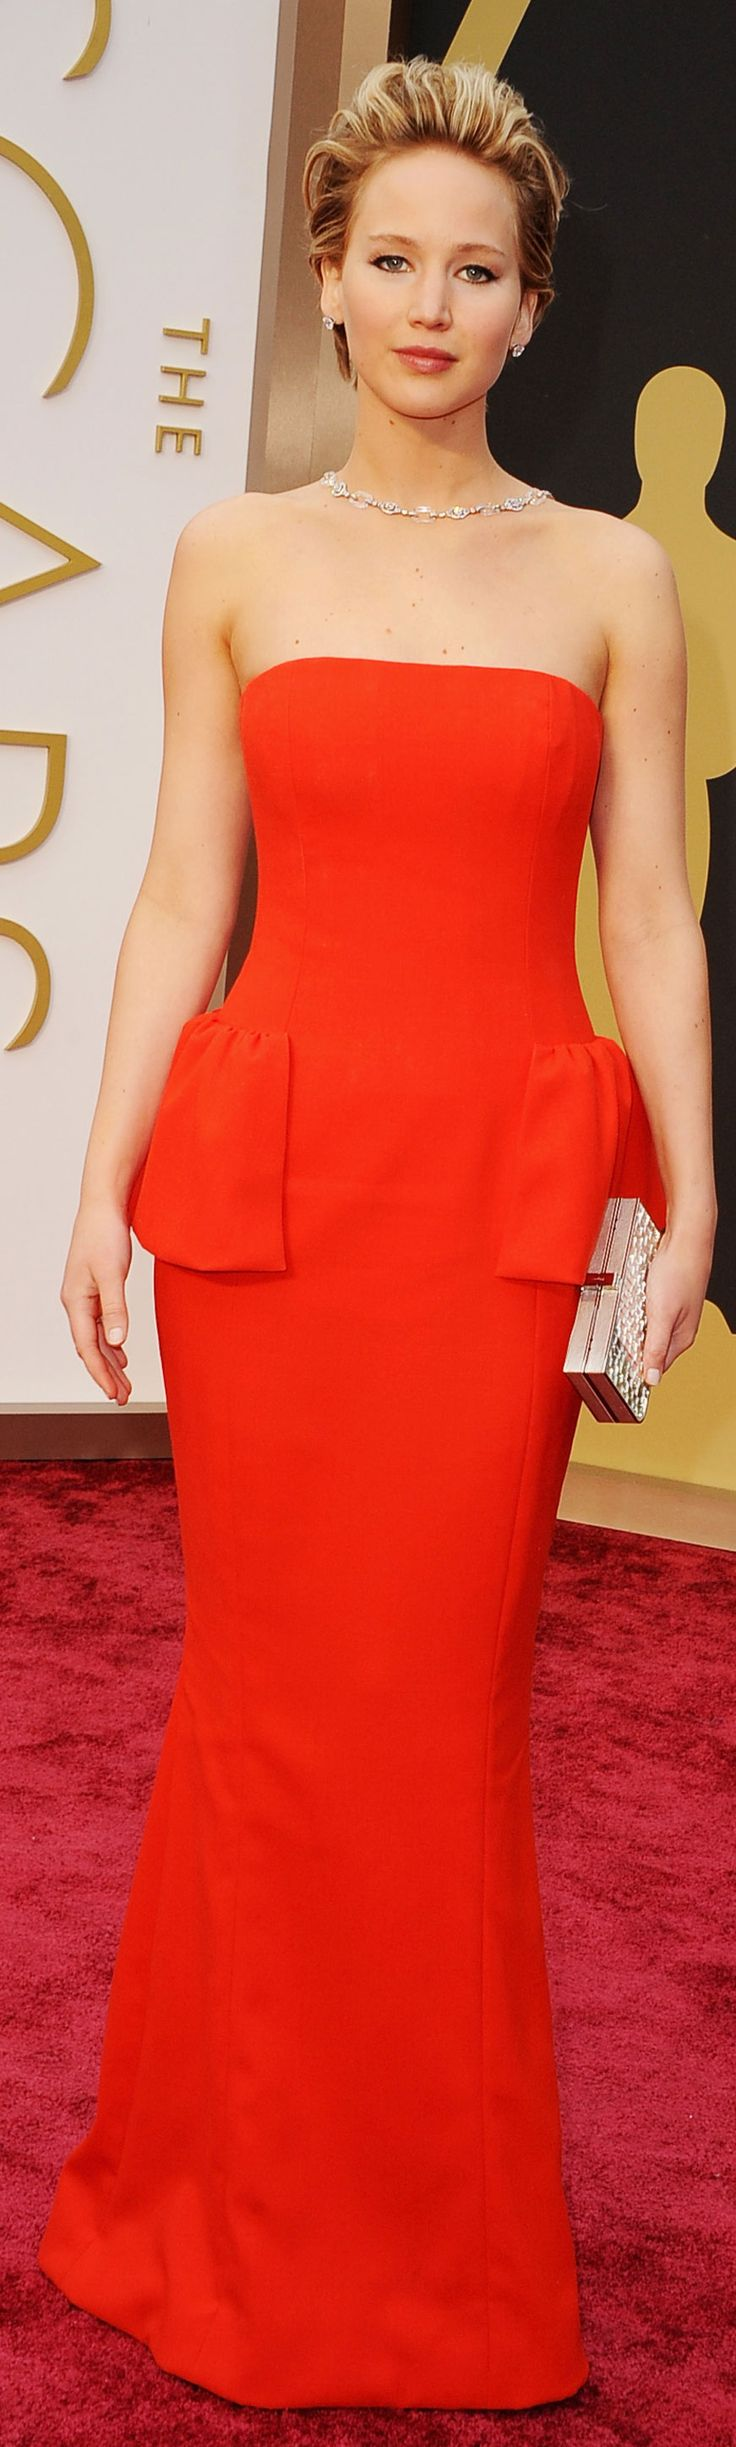 Jennifer Lawrence in a glamorous Dior gown on the Oscars red carpet. #AcademyAwards